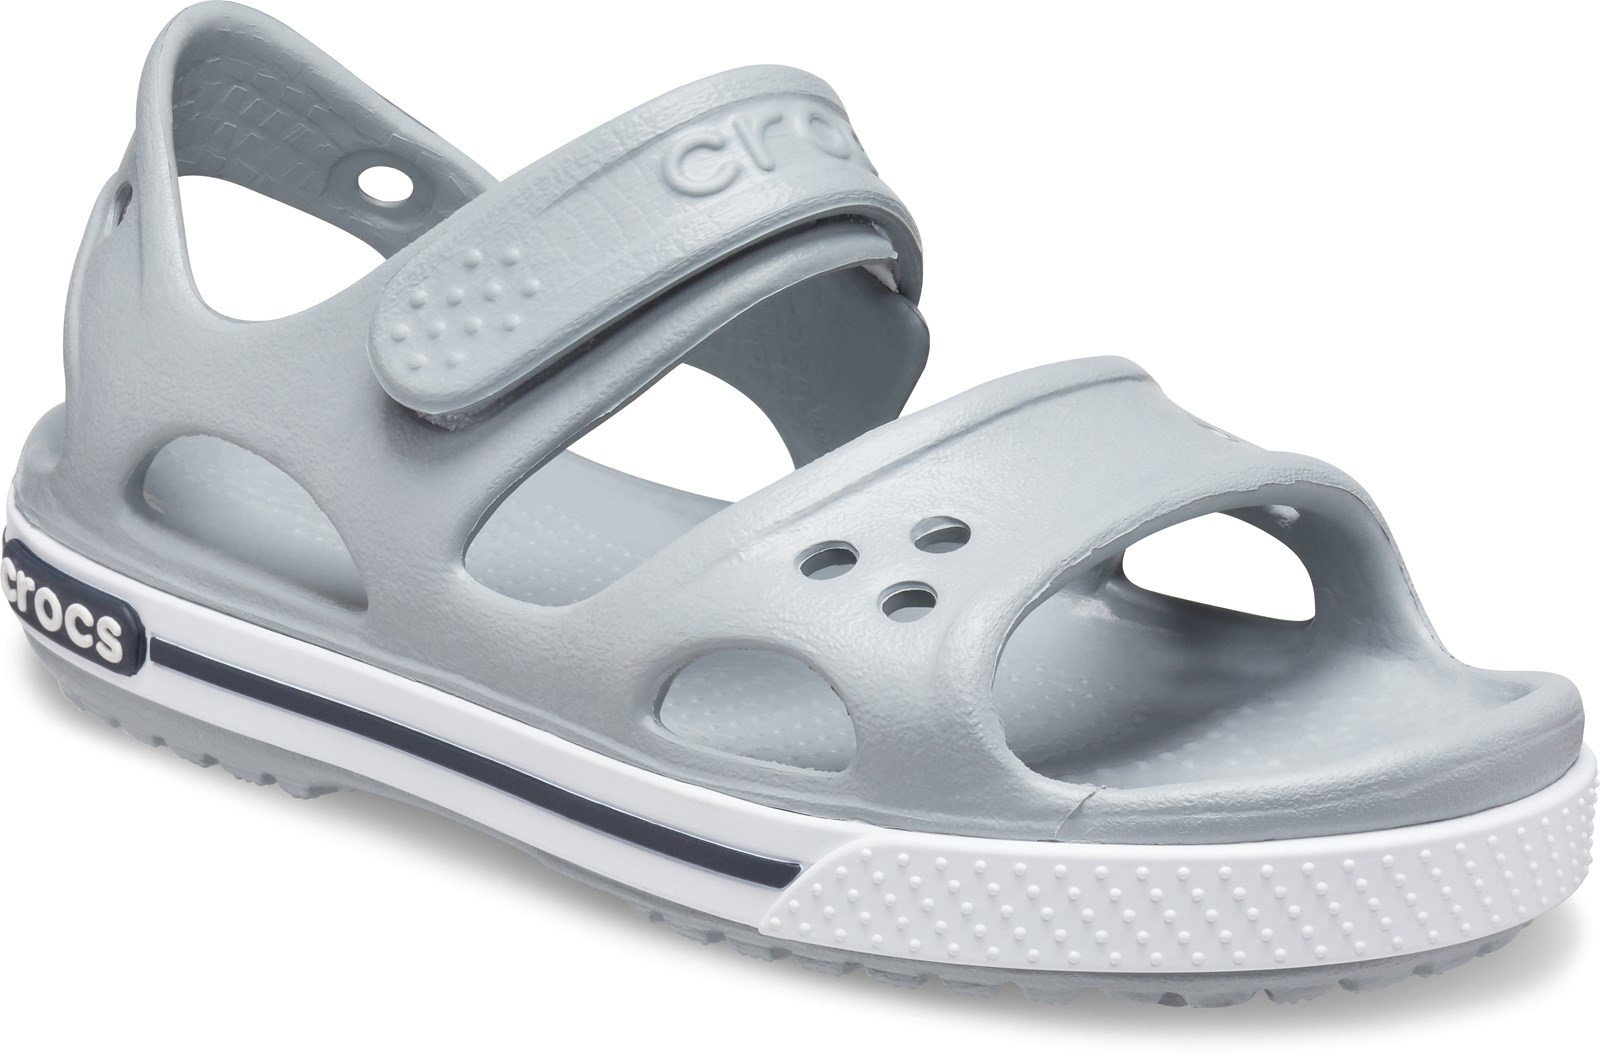 Crocs Kid's Crocband ll Touch Fastening Sandal Various Colours 28788 - Light Grey/Navy 4